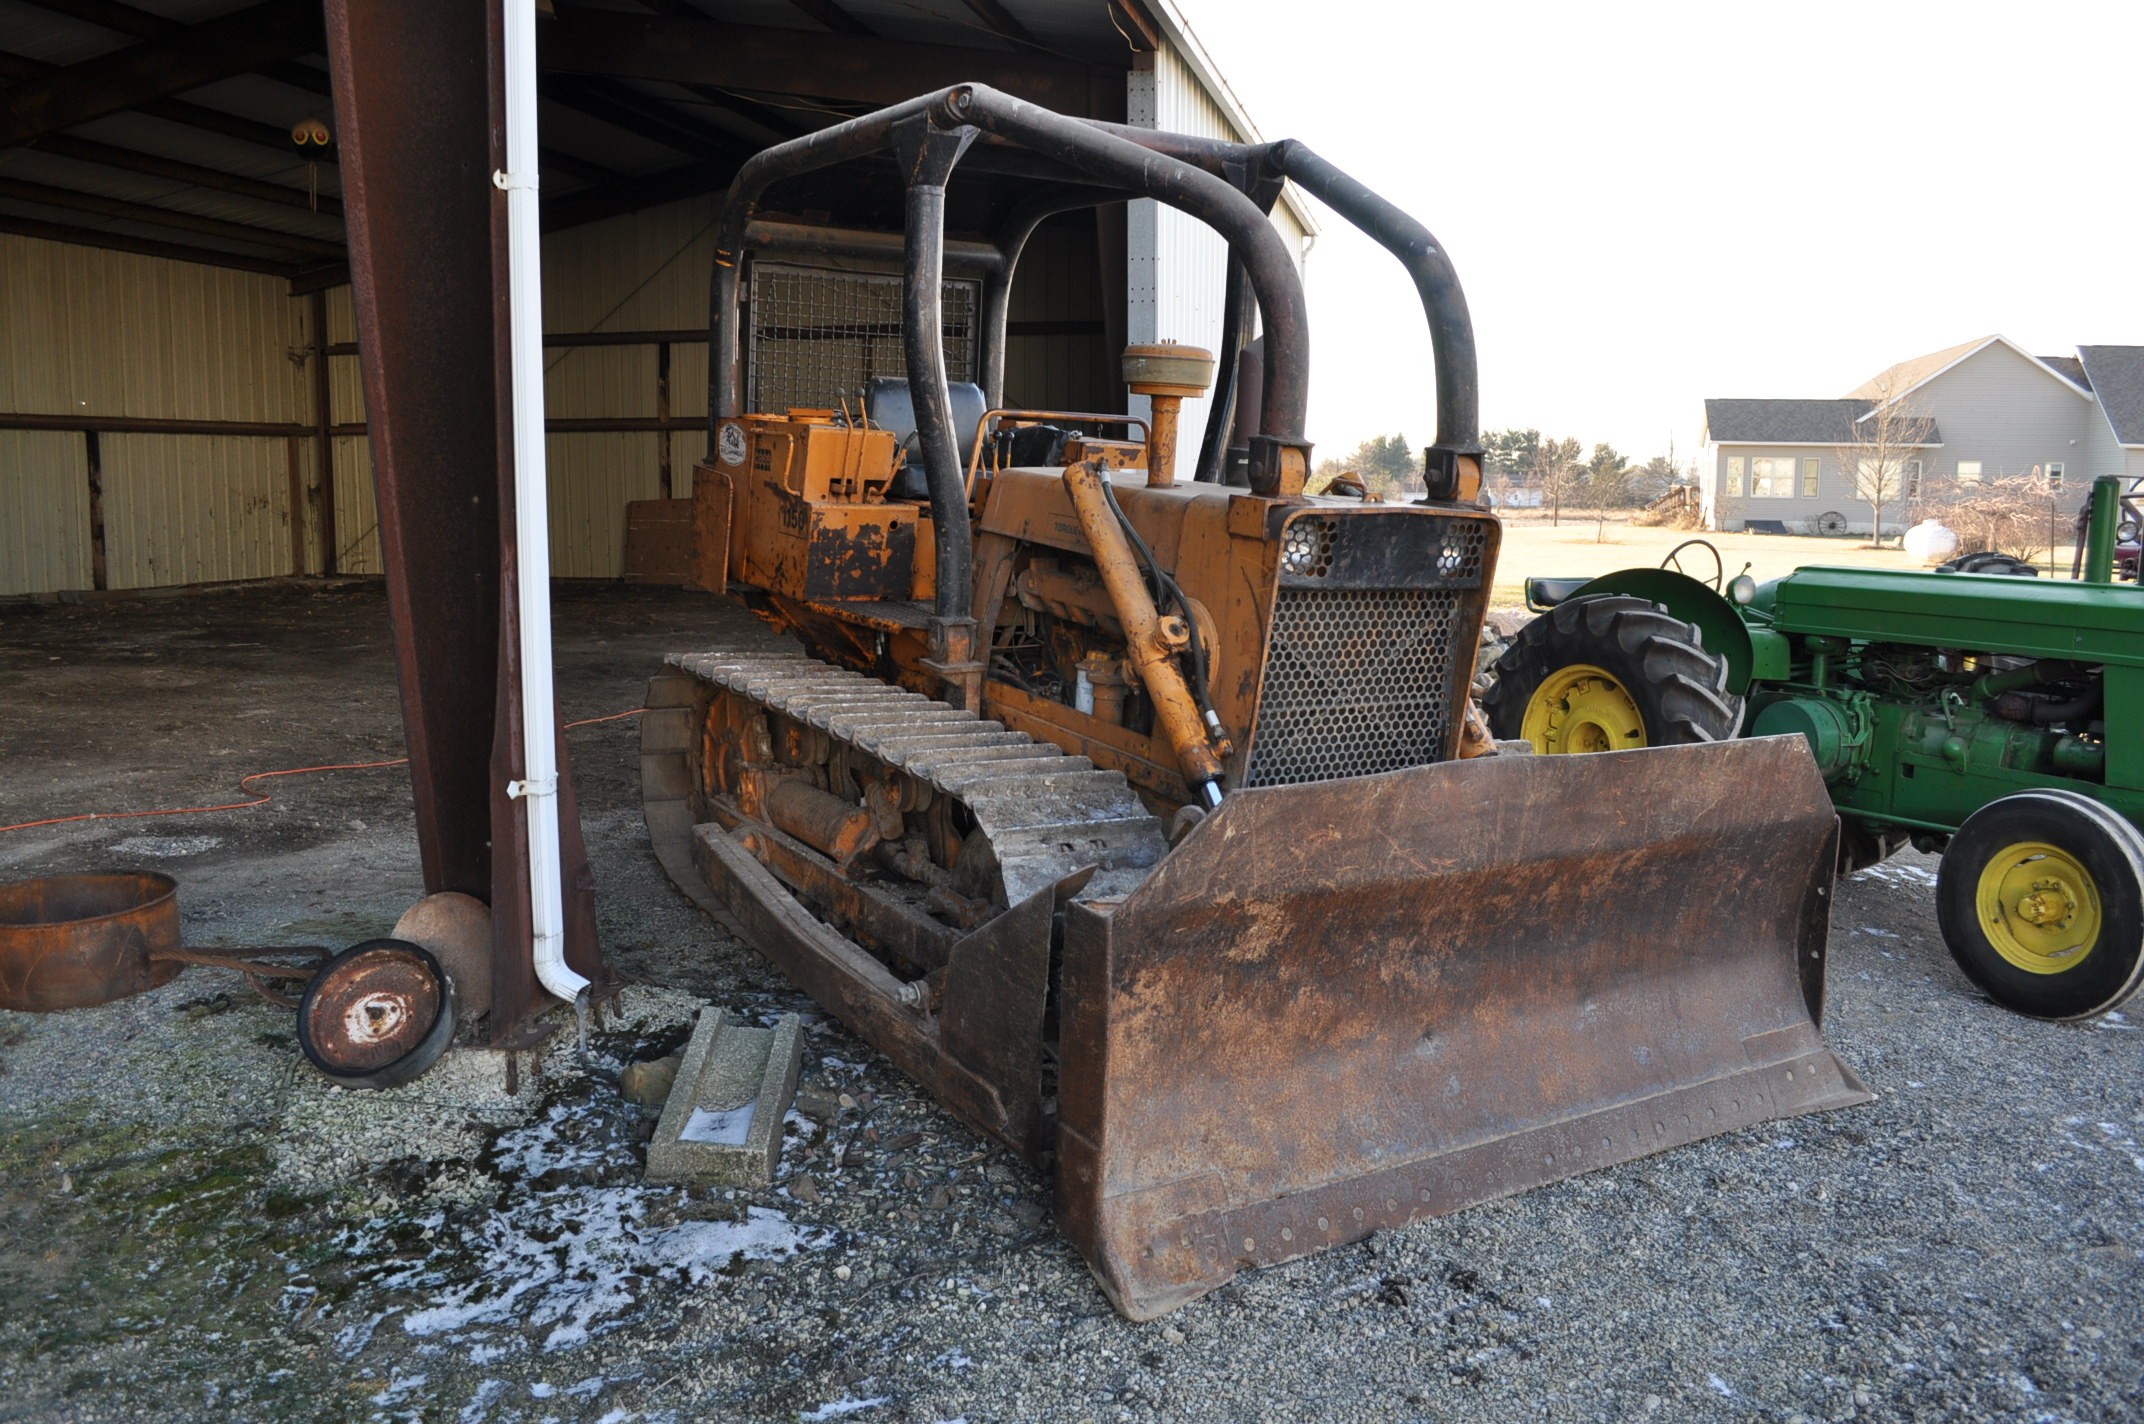 Case 1150 dozer, 8' 4 way blade, rear hitch, diesel, shows 1250 hrs, hrs unkown, SN missing - Image 4 of 11